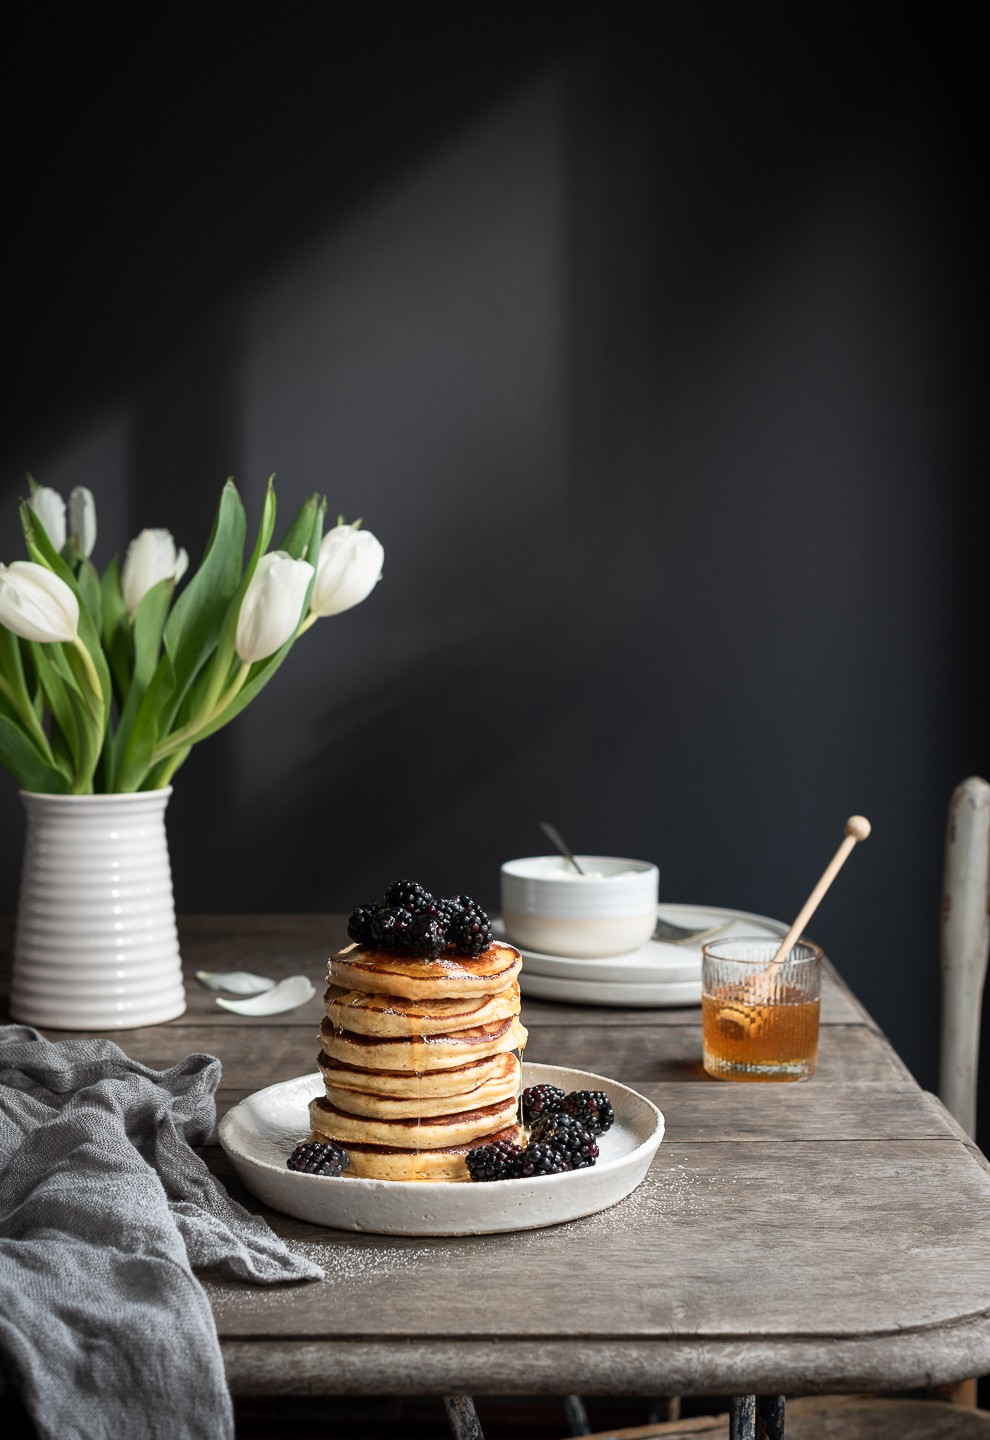 The fluffiest Ricotta pancakes